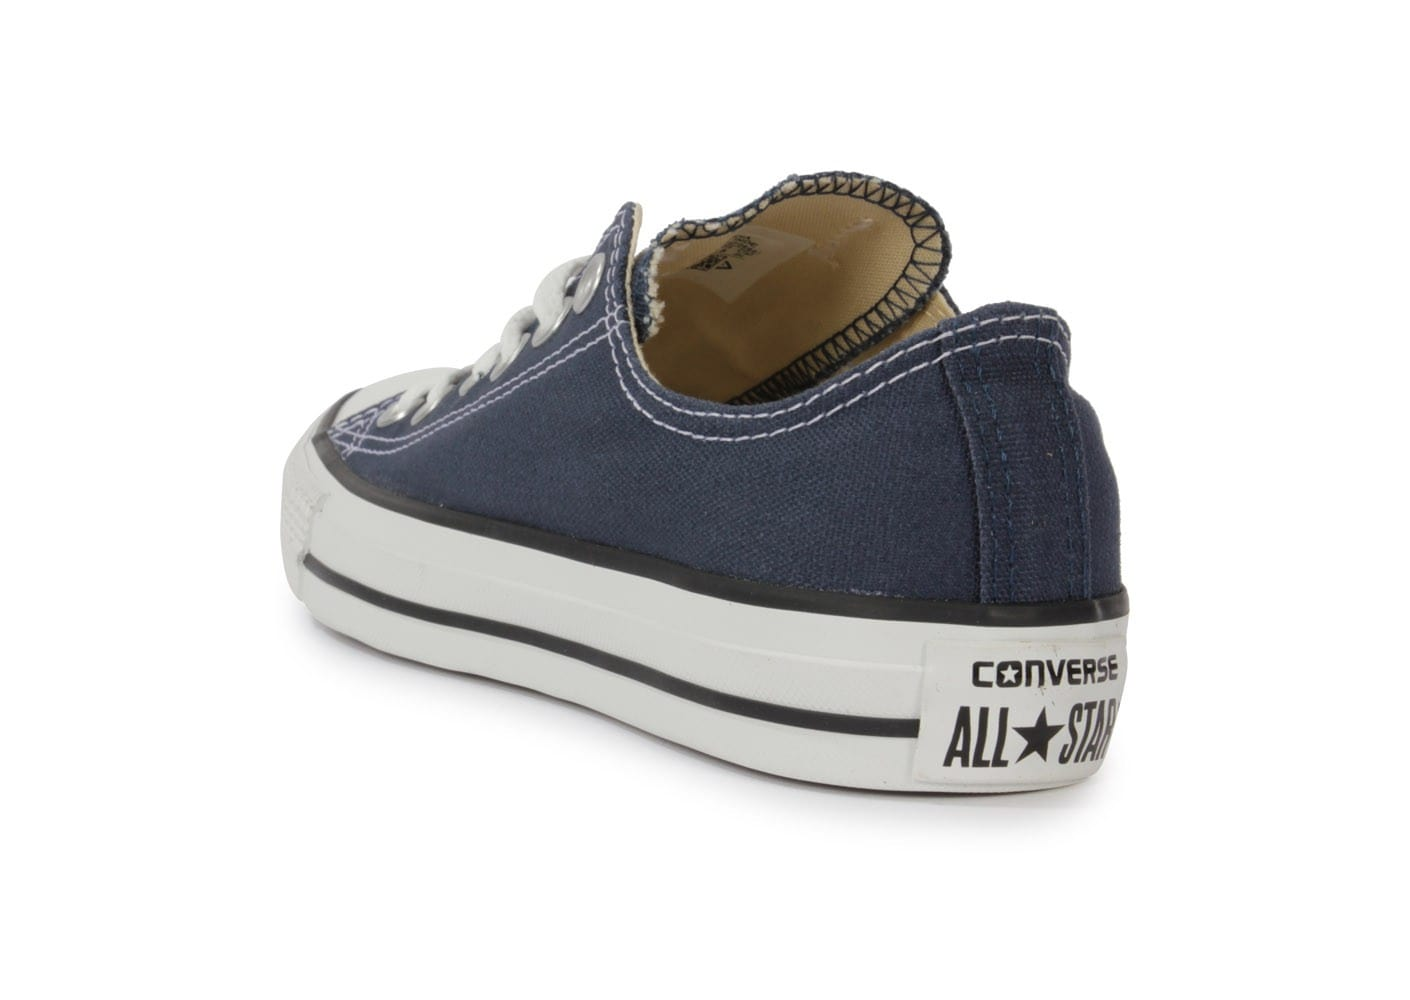 converse all star basse bleu marine lac. Black Bedroom Furniture Sets. Home Design Ideas